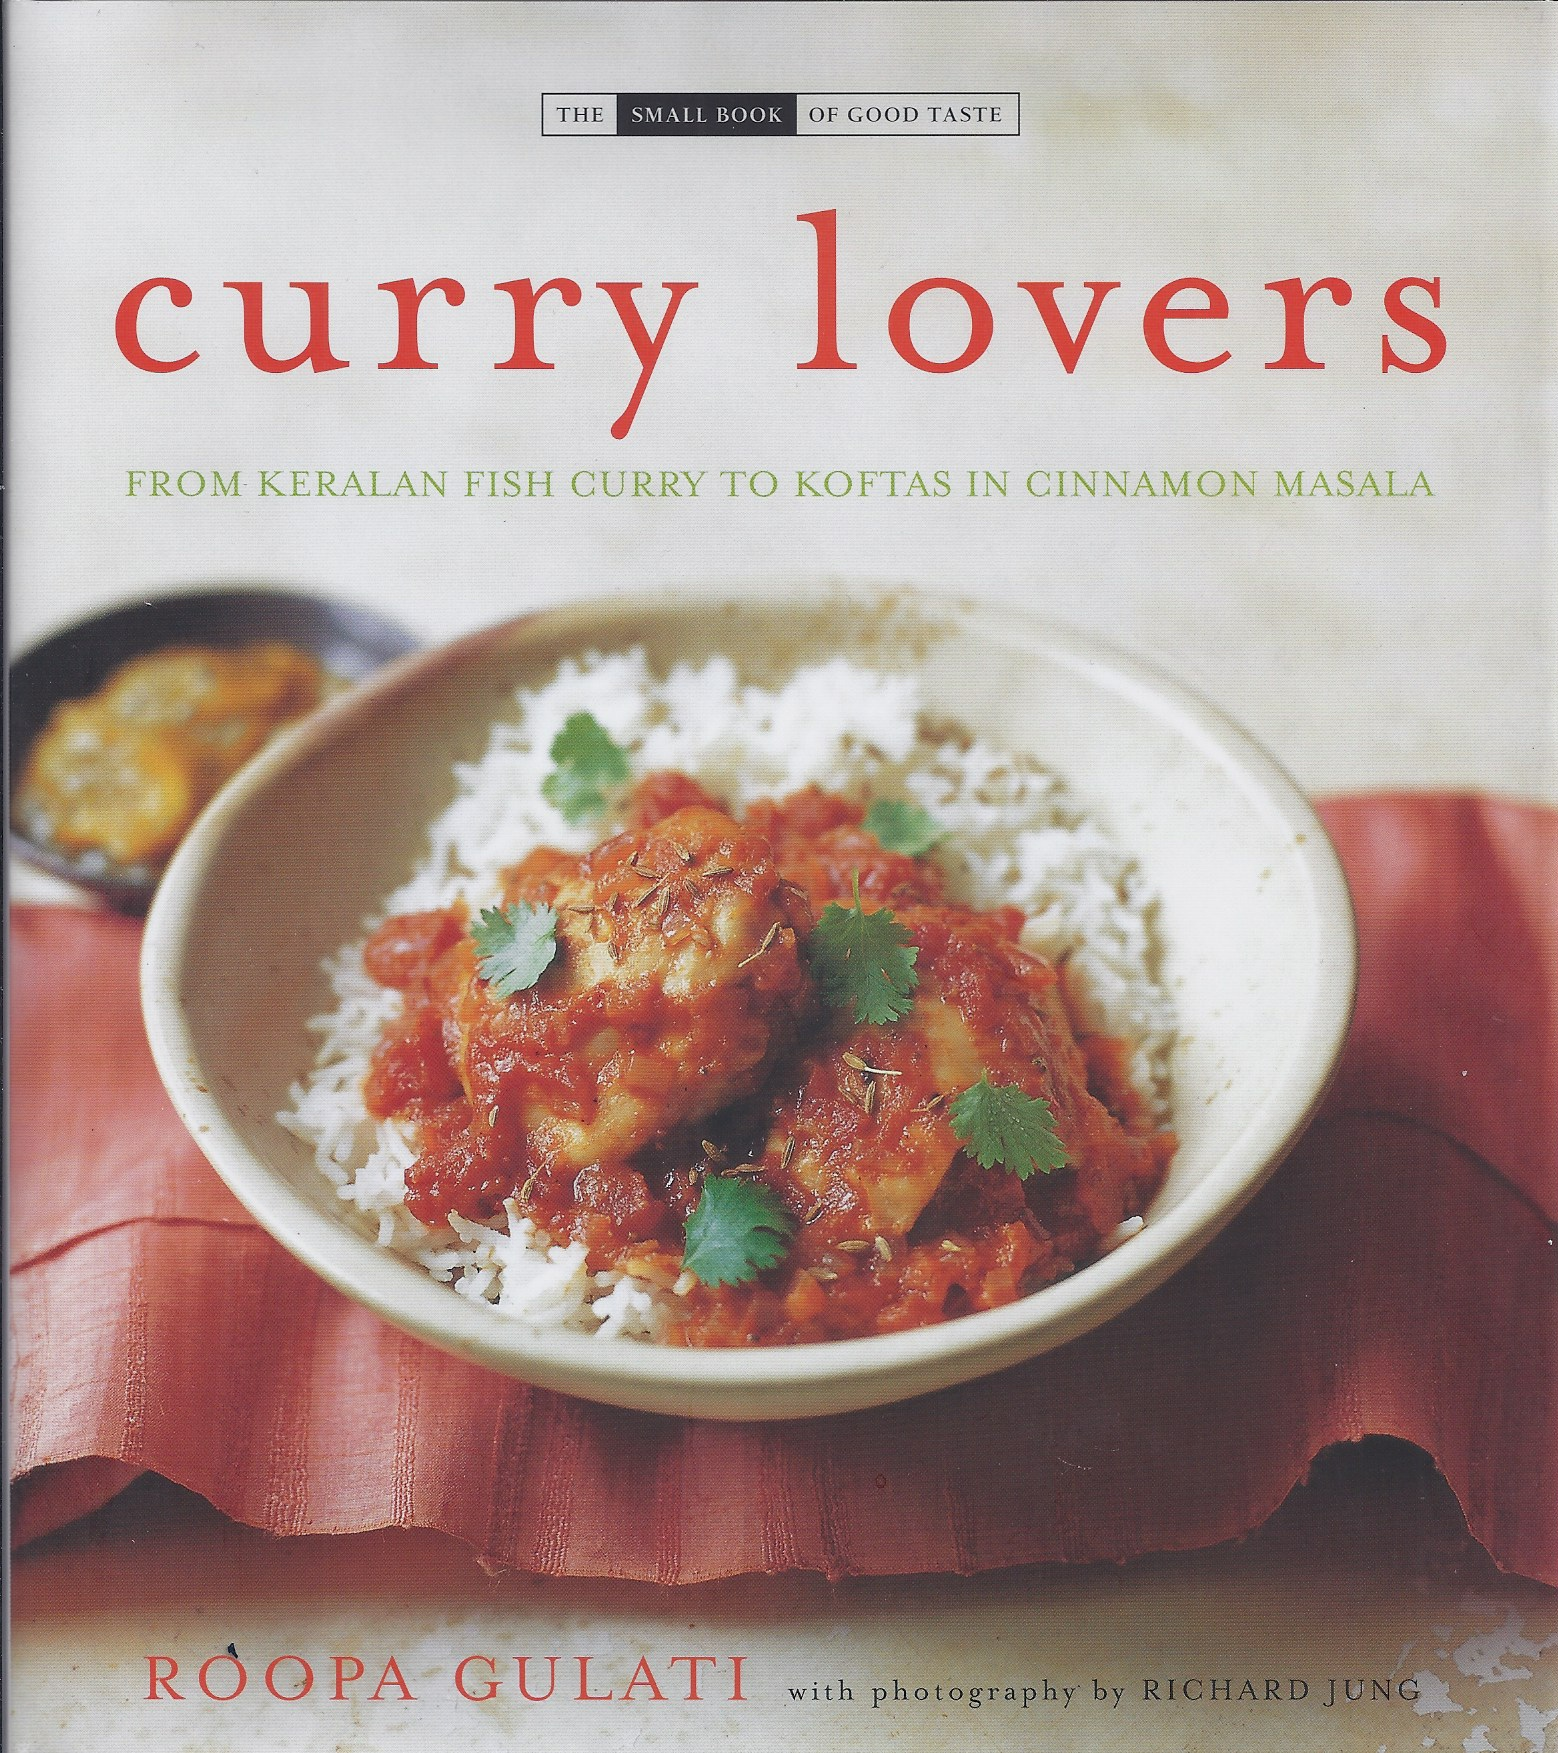 Curry Lovers From Keralan Fish Curry to Koftan in Cinnamon Masala